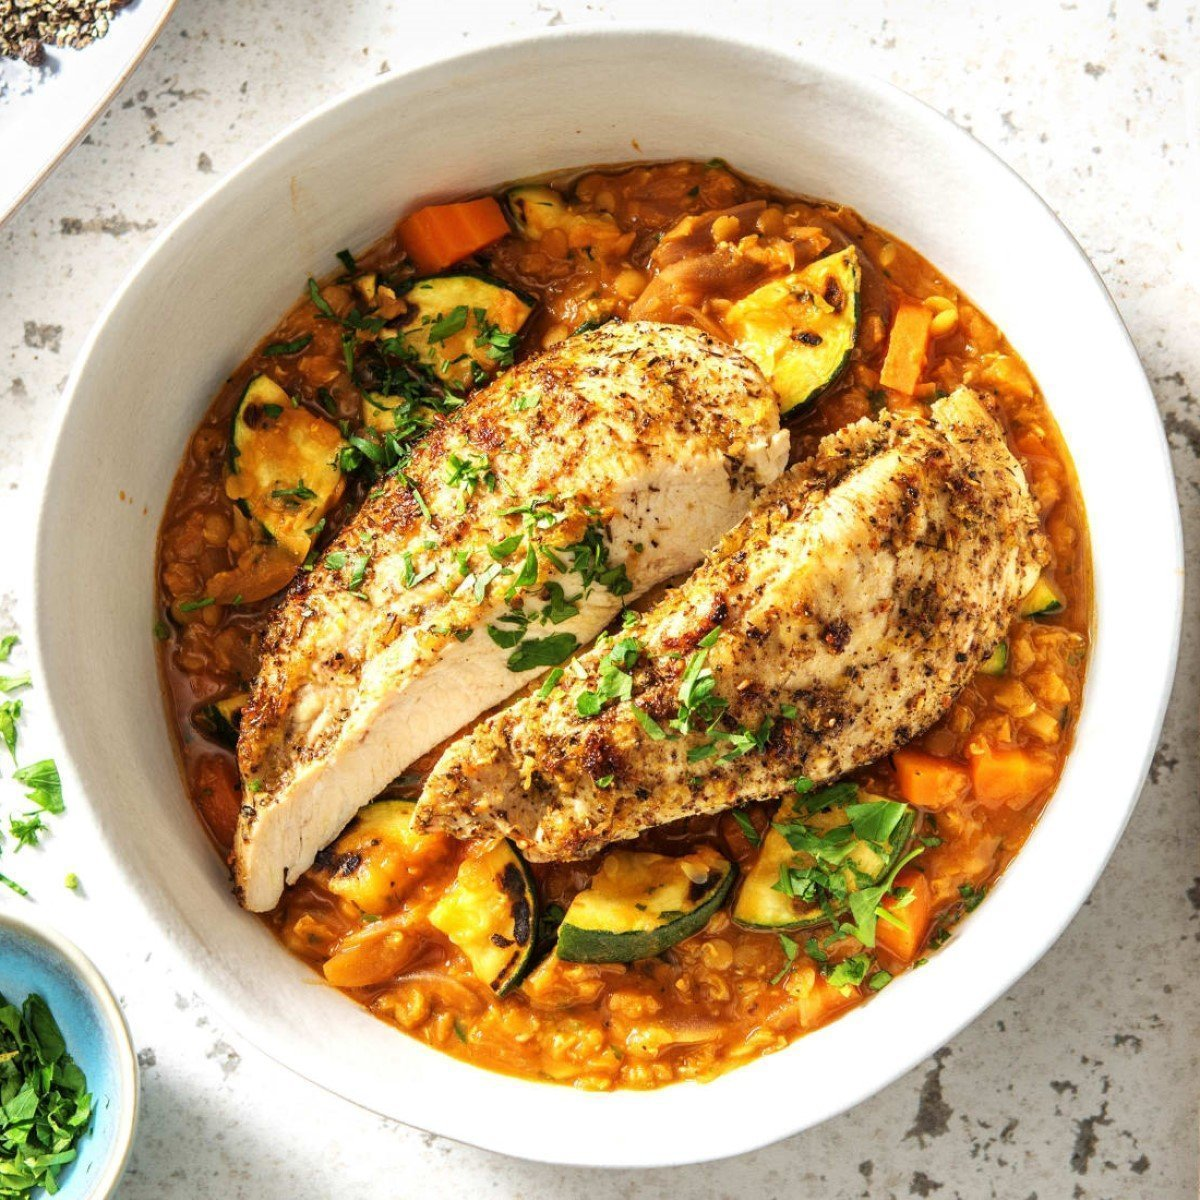 Spicy Grilled Chicken with Lentils Recipe